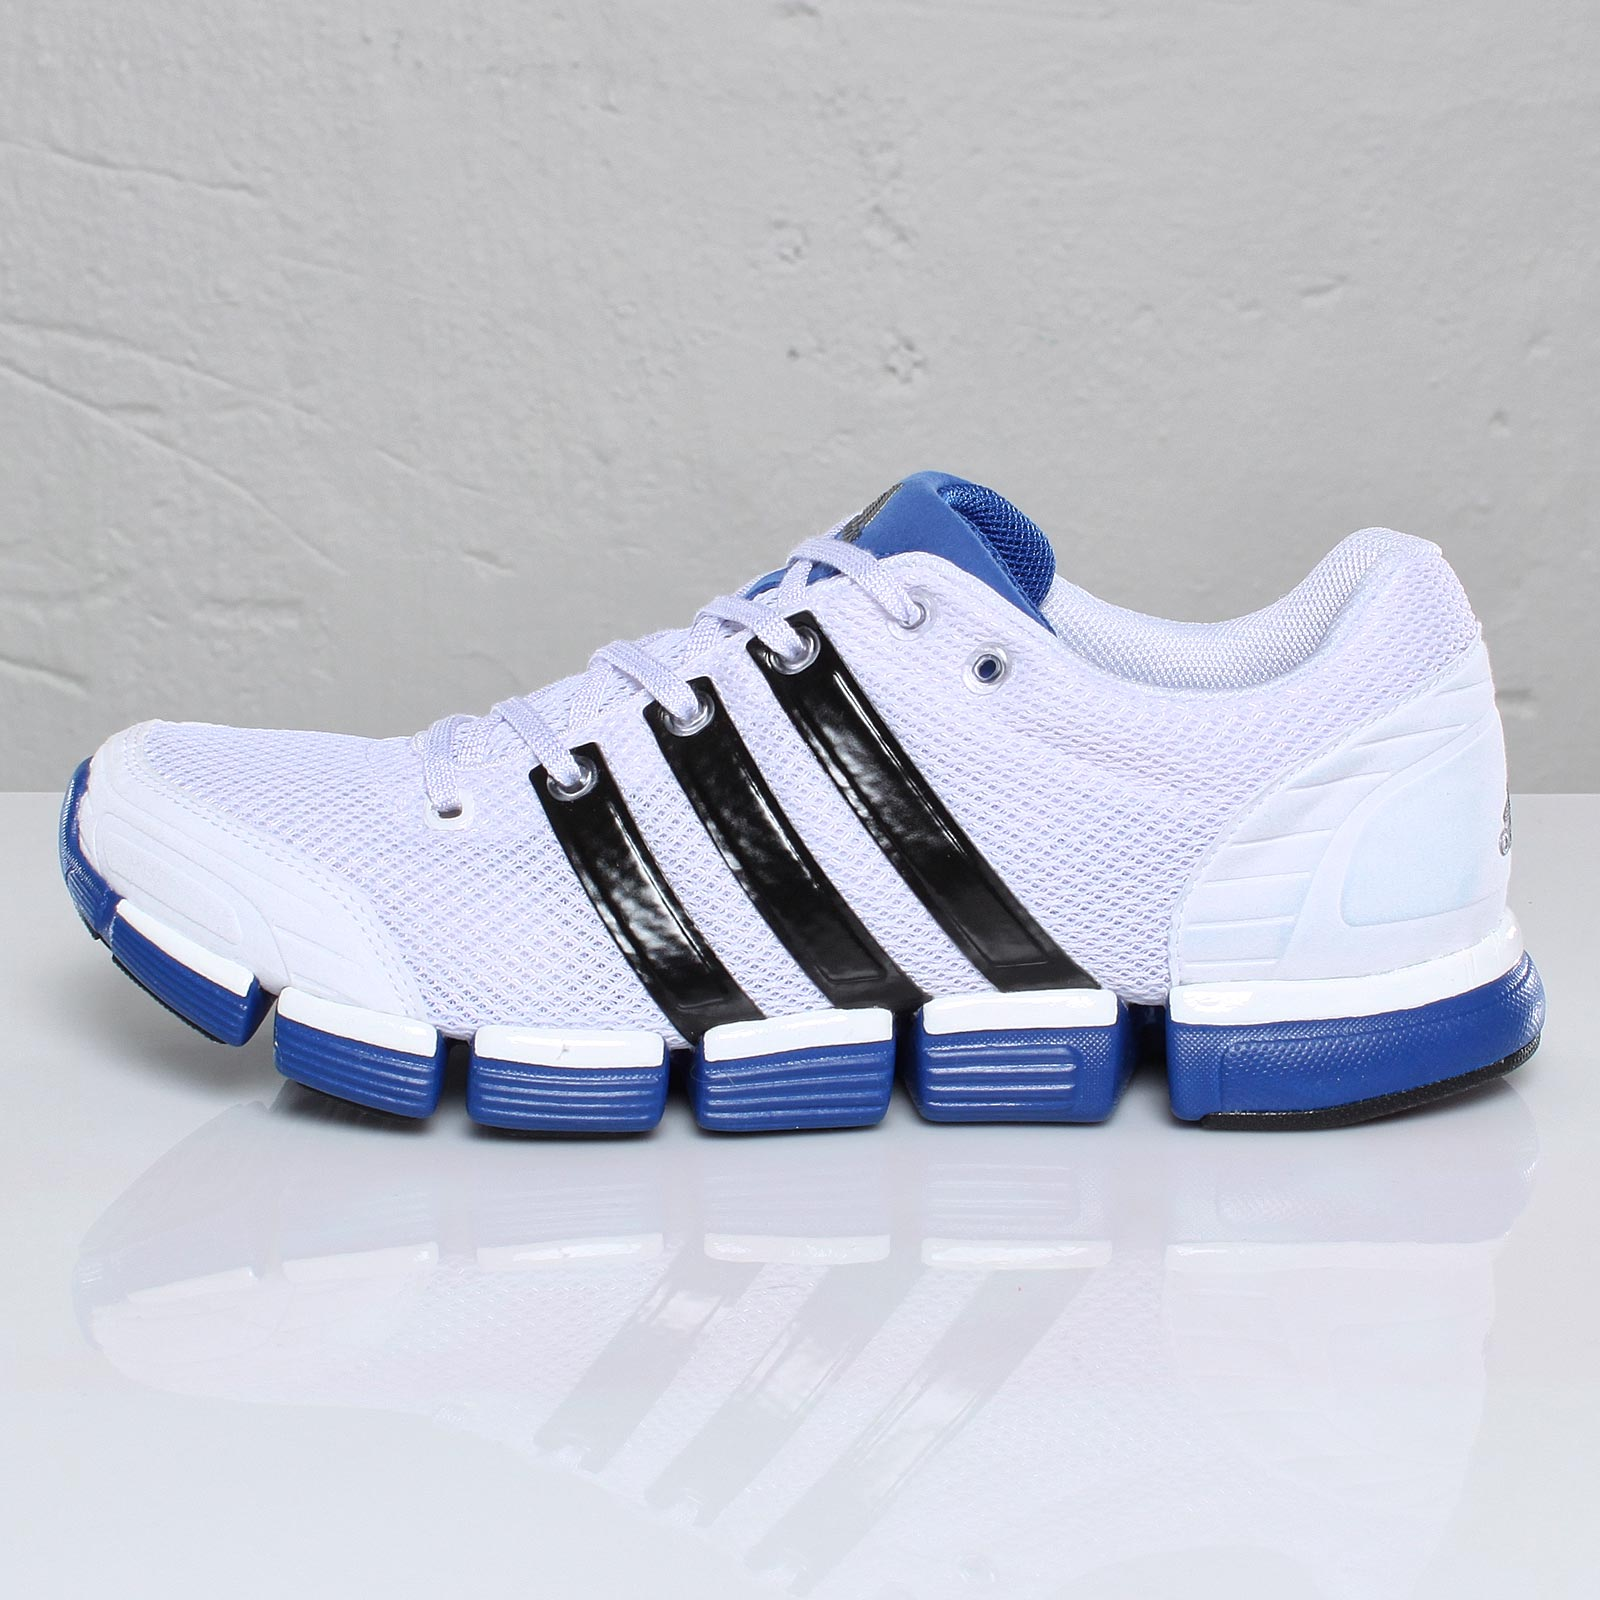 separation shoes fa515 d6a8b adidas Climacool Chill - 100781 - Sneakersnstuff   sneakers   streetwear  online since 1999